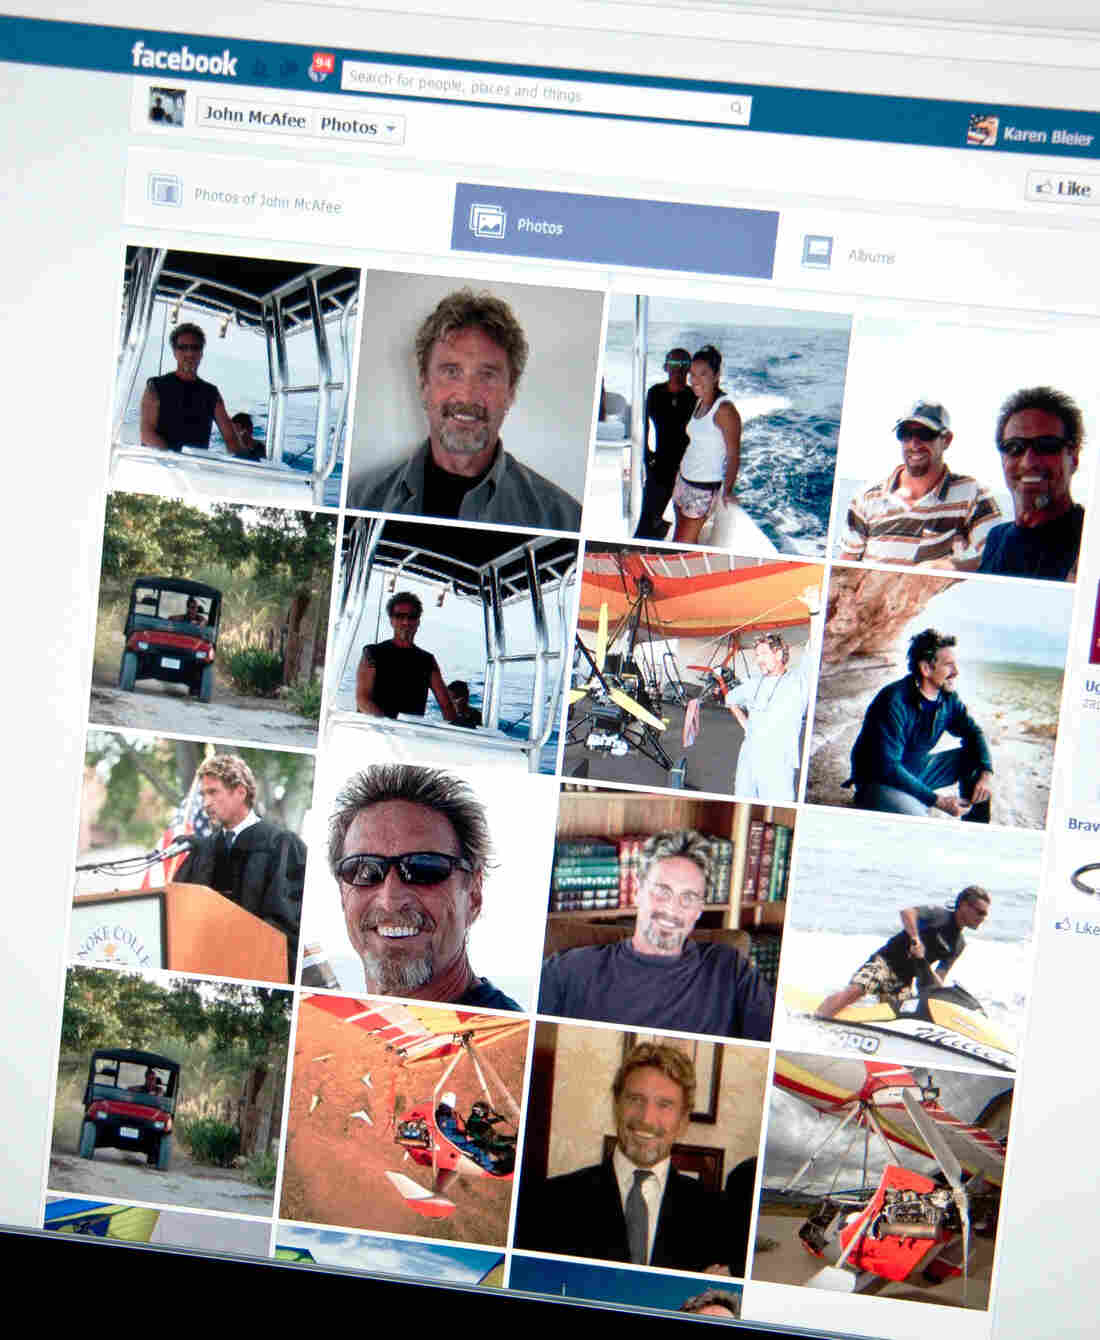 A Facebook page shows photos of John McAfee, the founder of the eponymous anti-virus company.